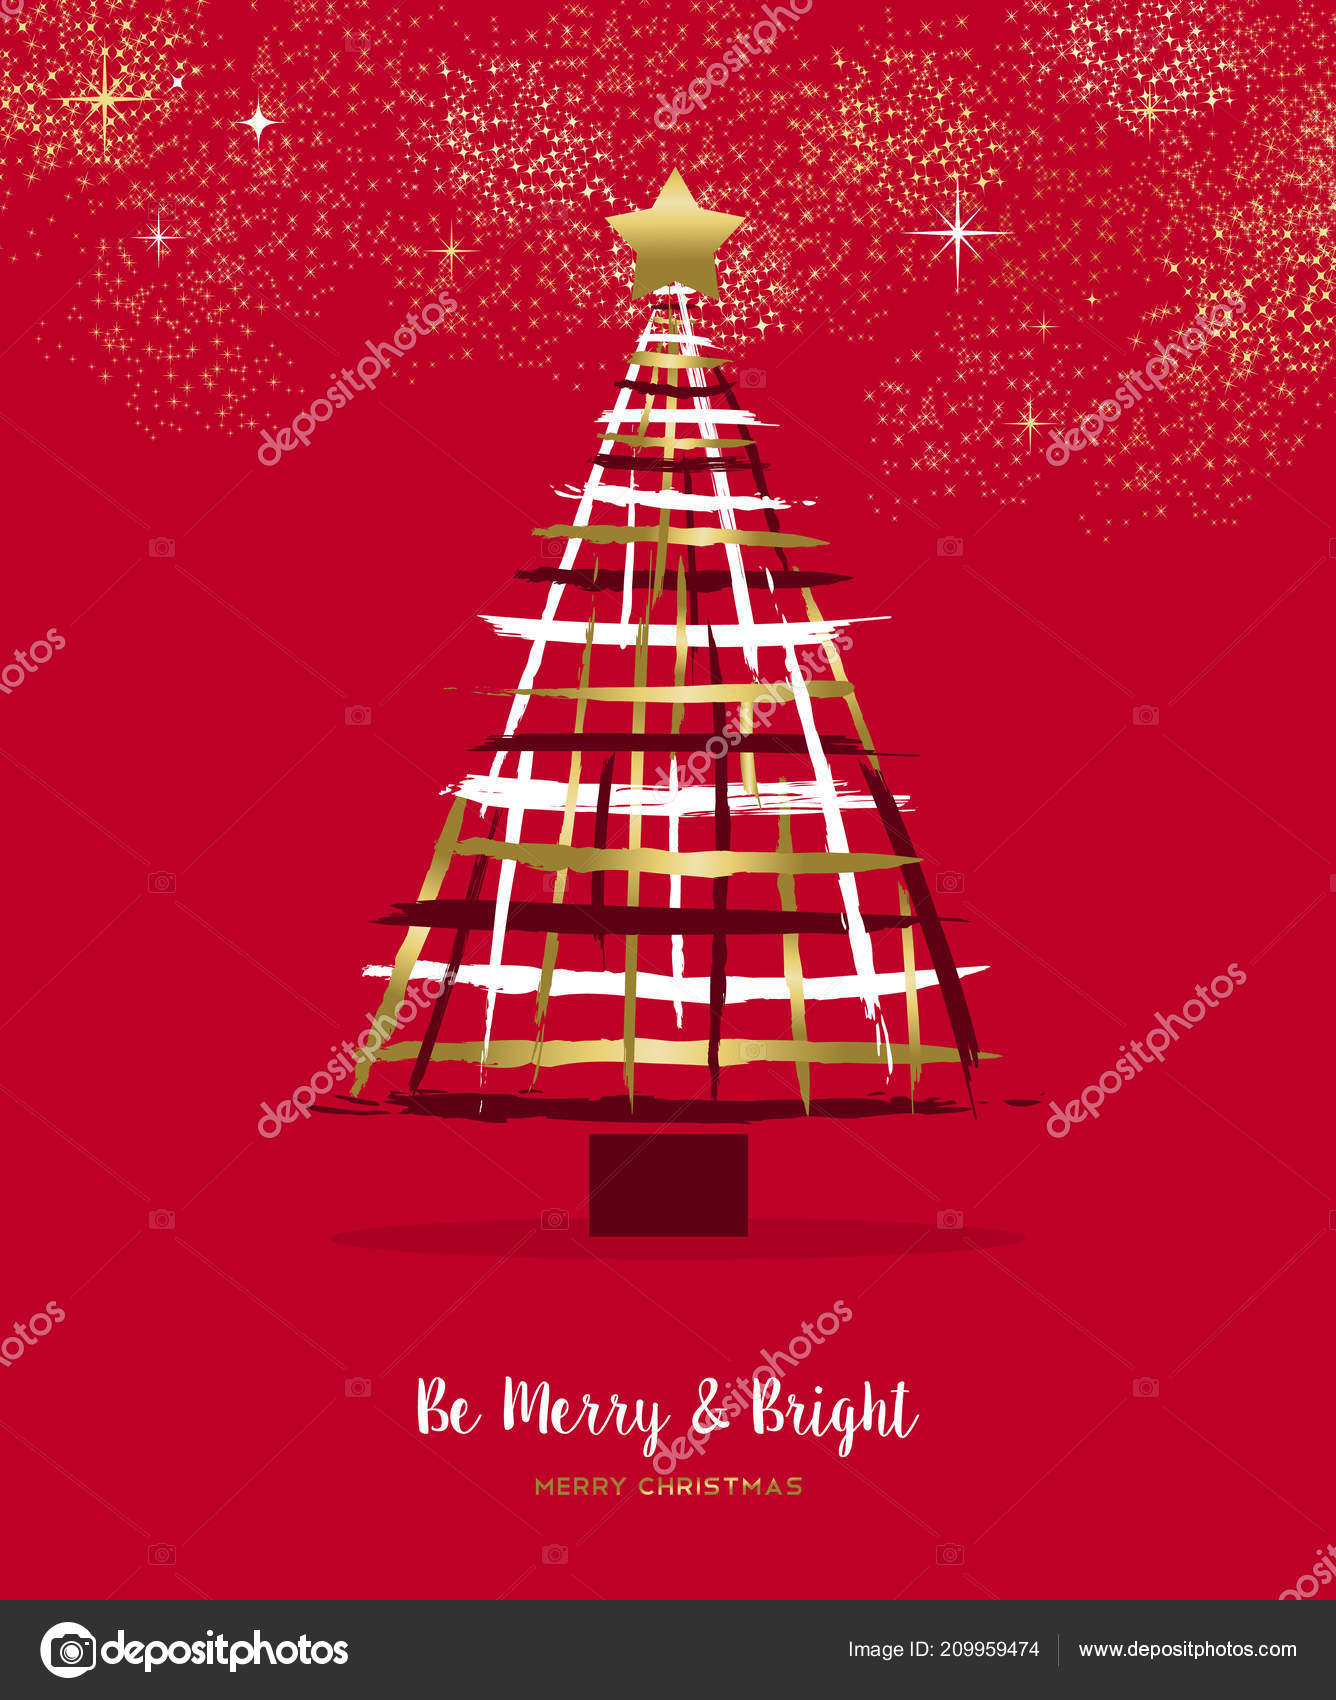 Merry Christmas Happy New Year Luxury Greeting Card Illustration ...